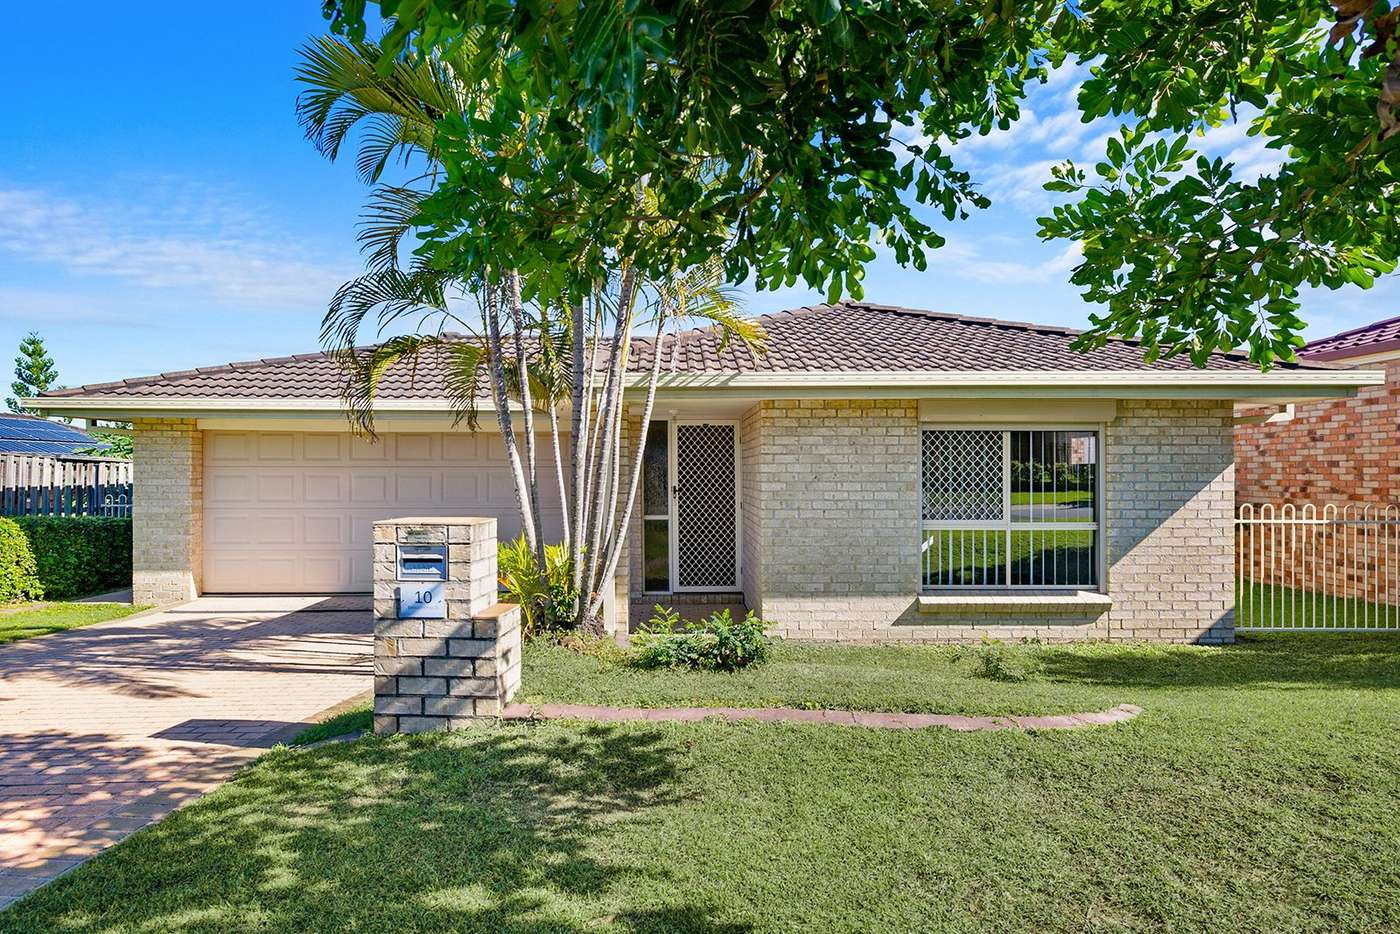 Main view of Homely house listing, 10 Beauchamp Street, Seventeen Mile Rocks QLD 4073